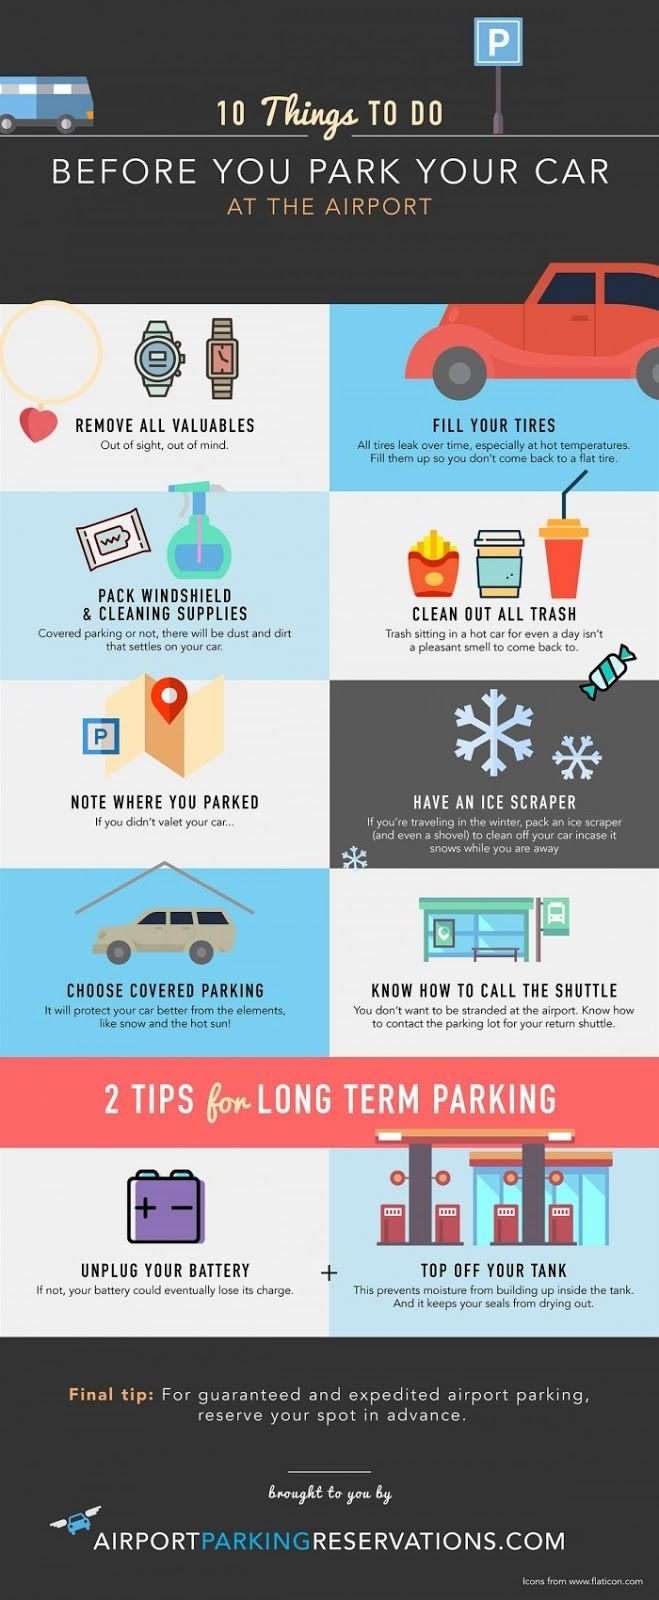 10 Things To Do Before You #Park At The #Airport - Do you fancy an infographic? There are a lot of them online, but if you want your own please visit http://www.linfografico.com/prezzi/ Online girano molte infografiche, se ne vuoi realizzare una tutta tua visita http://www.linfografico.com/prezzi/